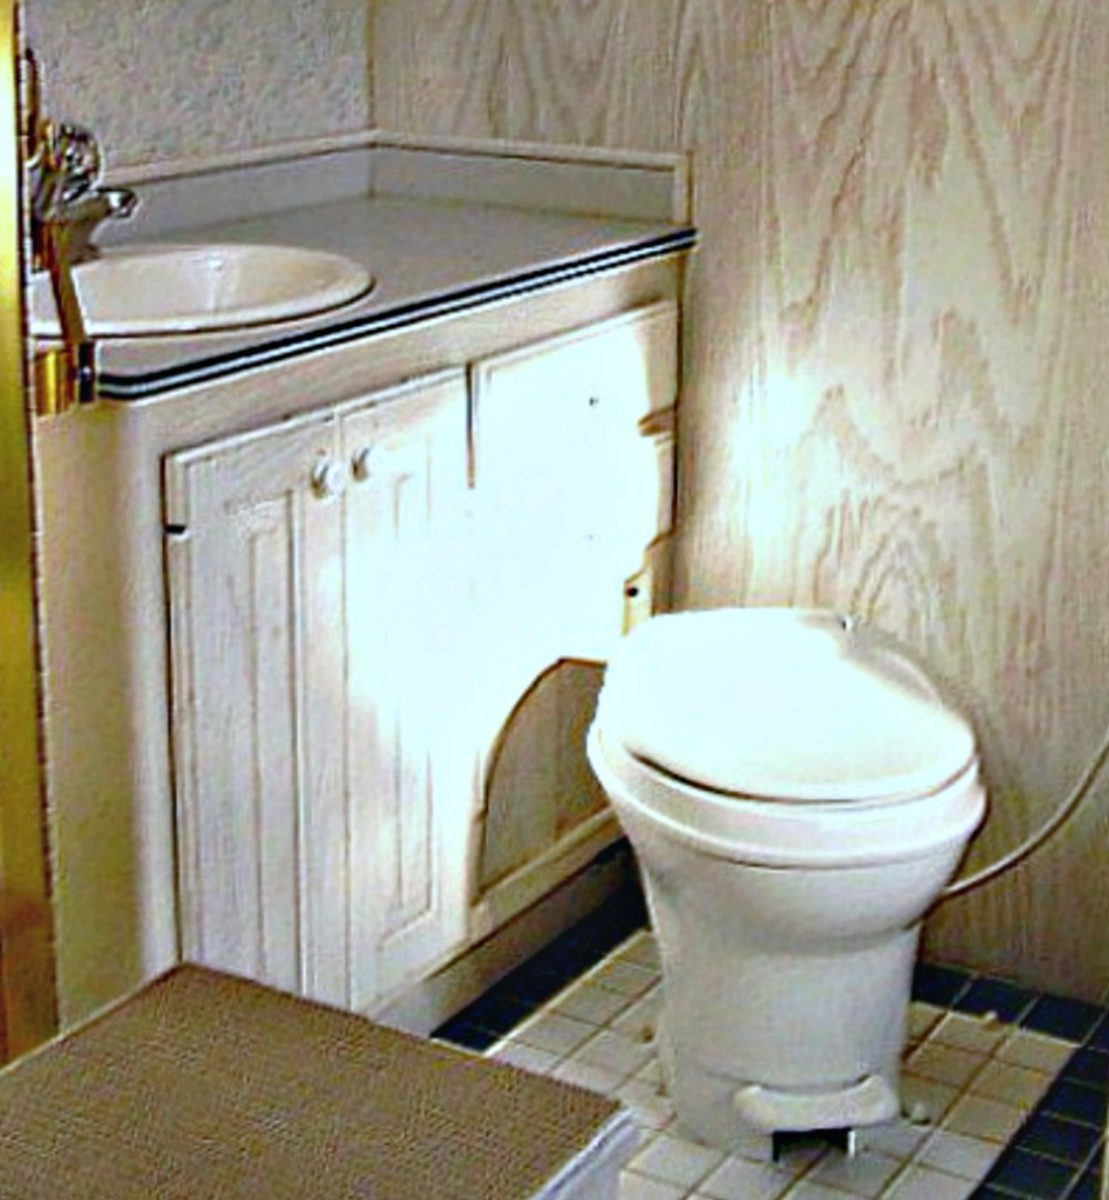 Ample counter and storage space in RV bathrooms are must haves for travelers.